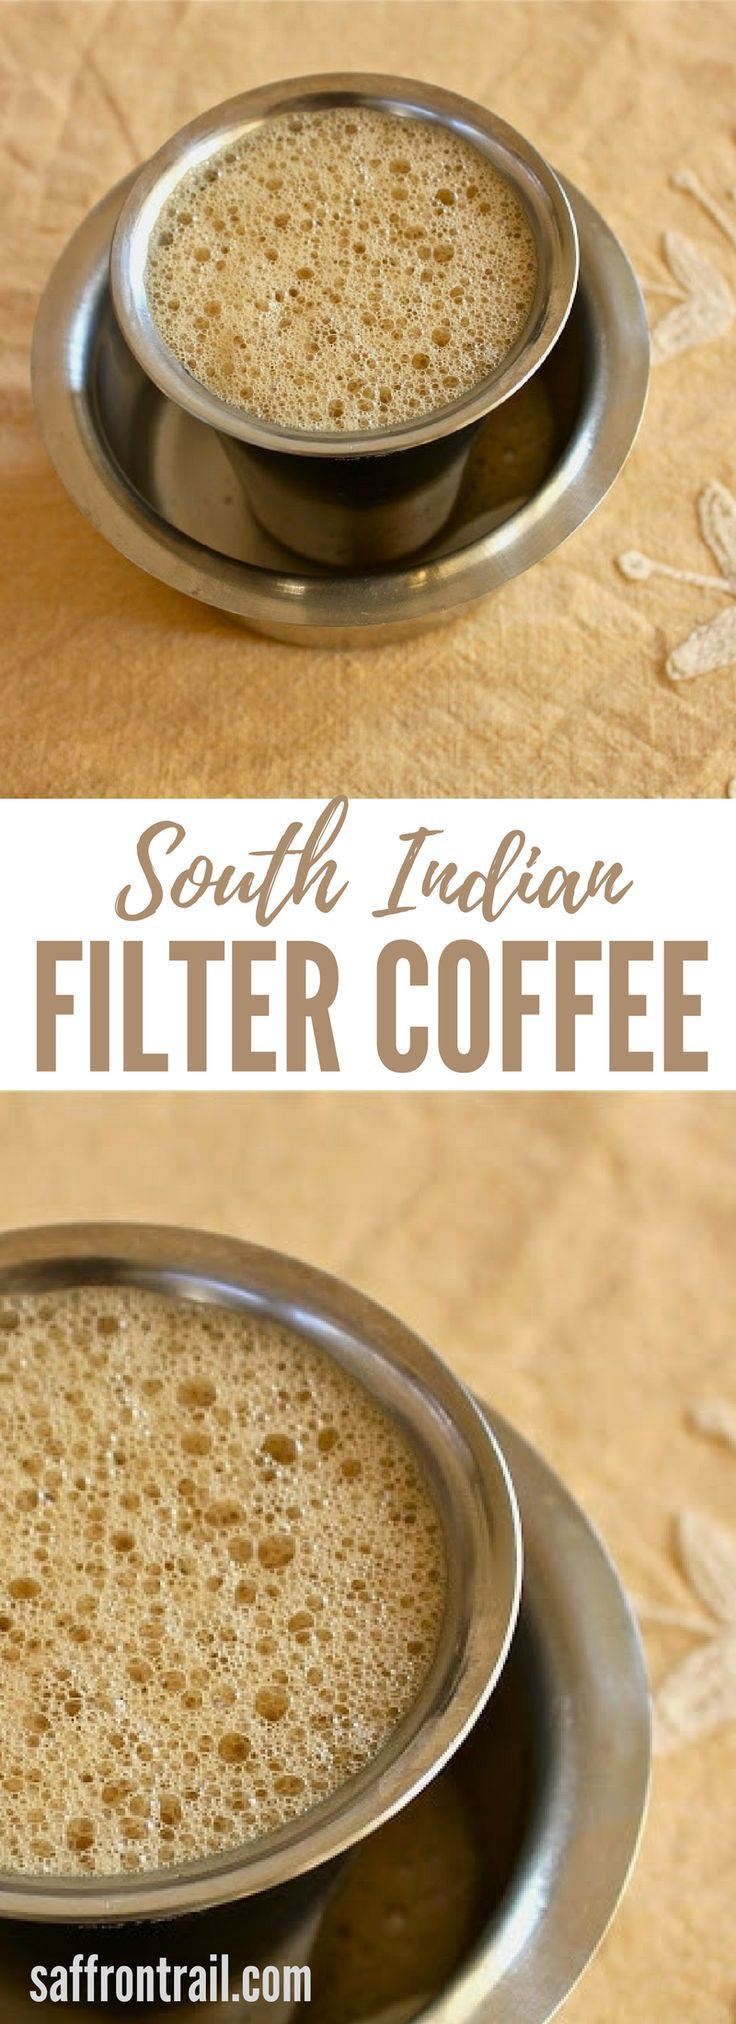 Get the details on equipment, method and video on how to make your cup of filter coffee, because everyone loves a tumbler of piping hot, aromatic and strong filter coffee!